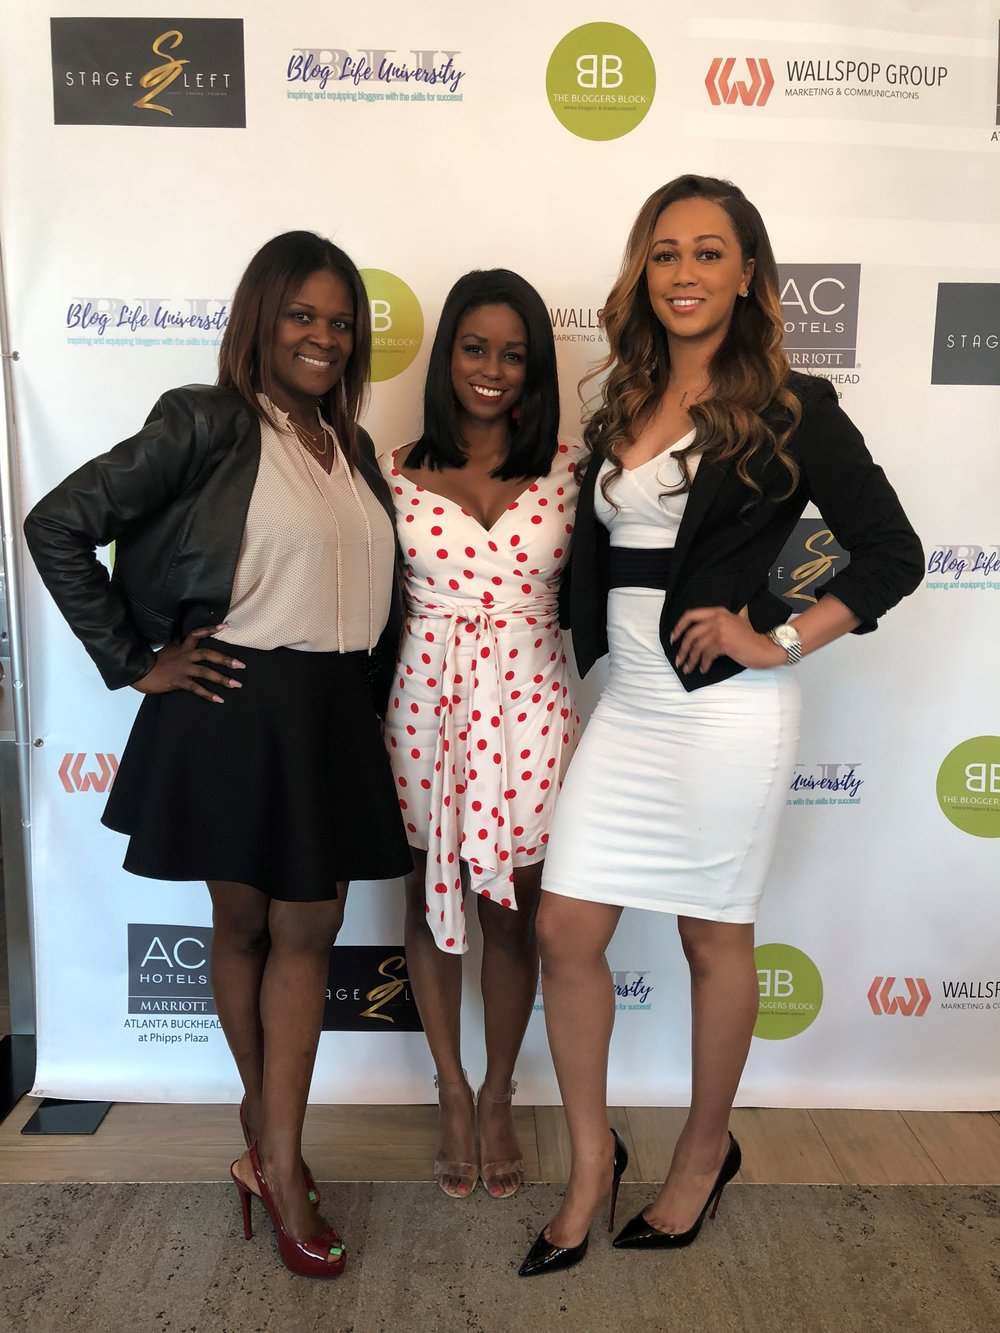 Dayana Brown, left. Ariel Anderson of WAGS Atlanta, right.